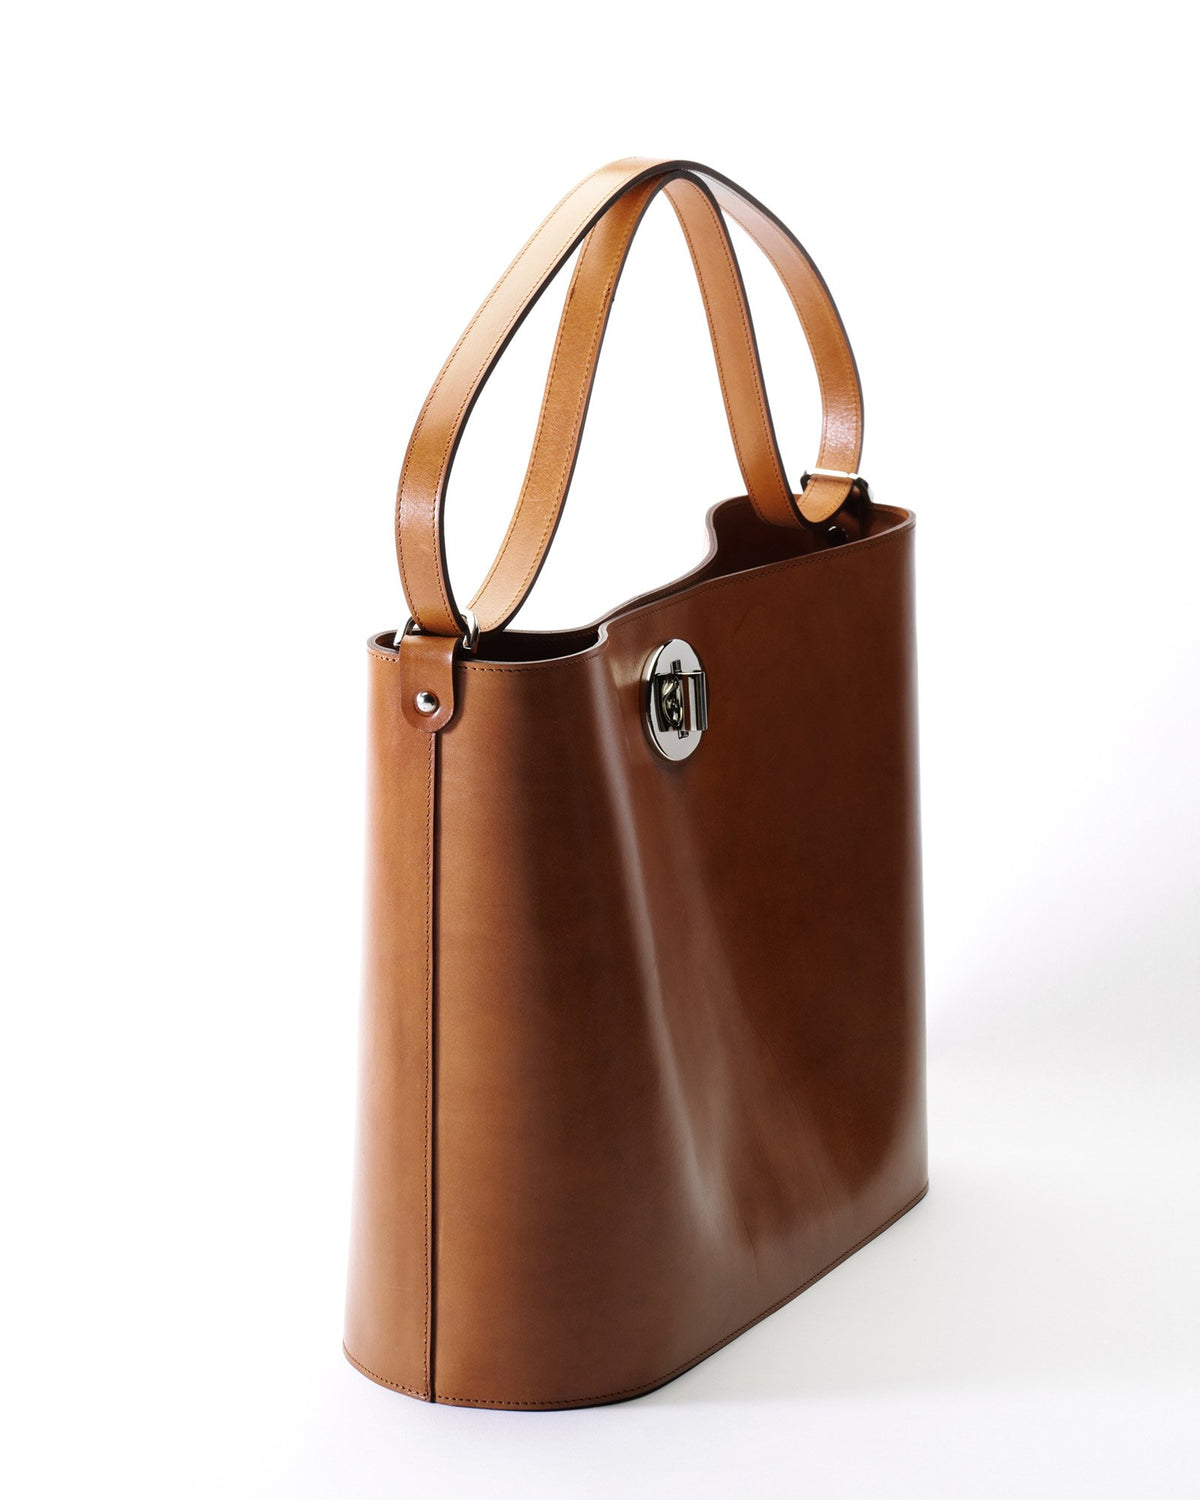 The Darlingmax Large Tote - Tan